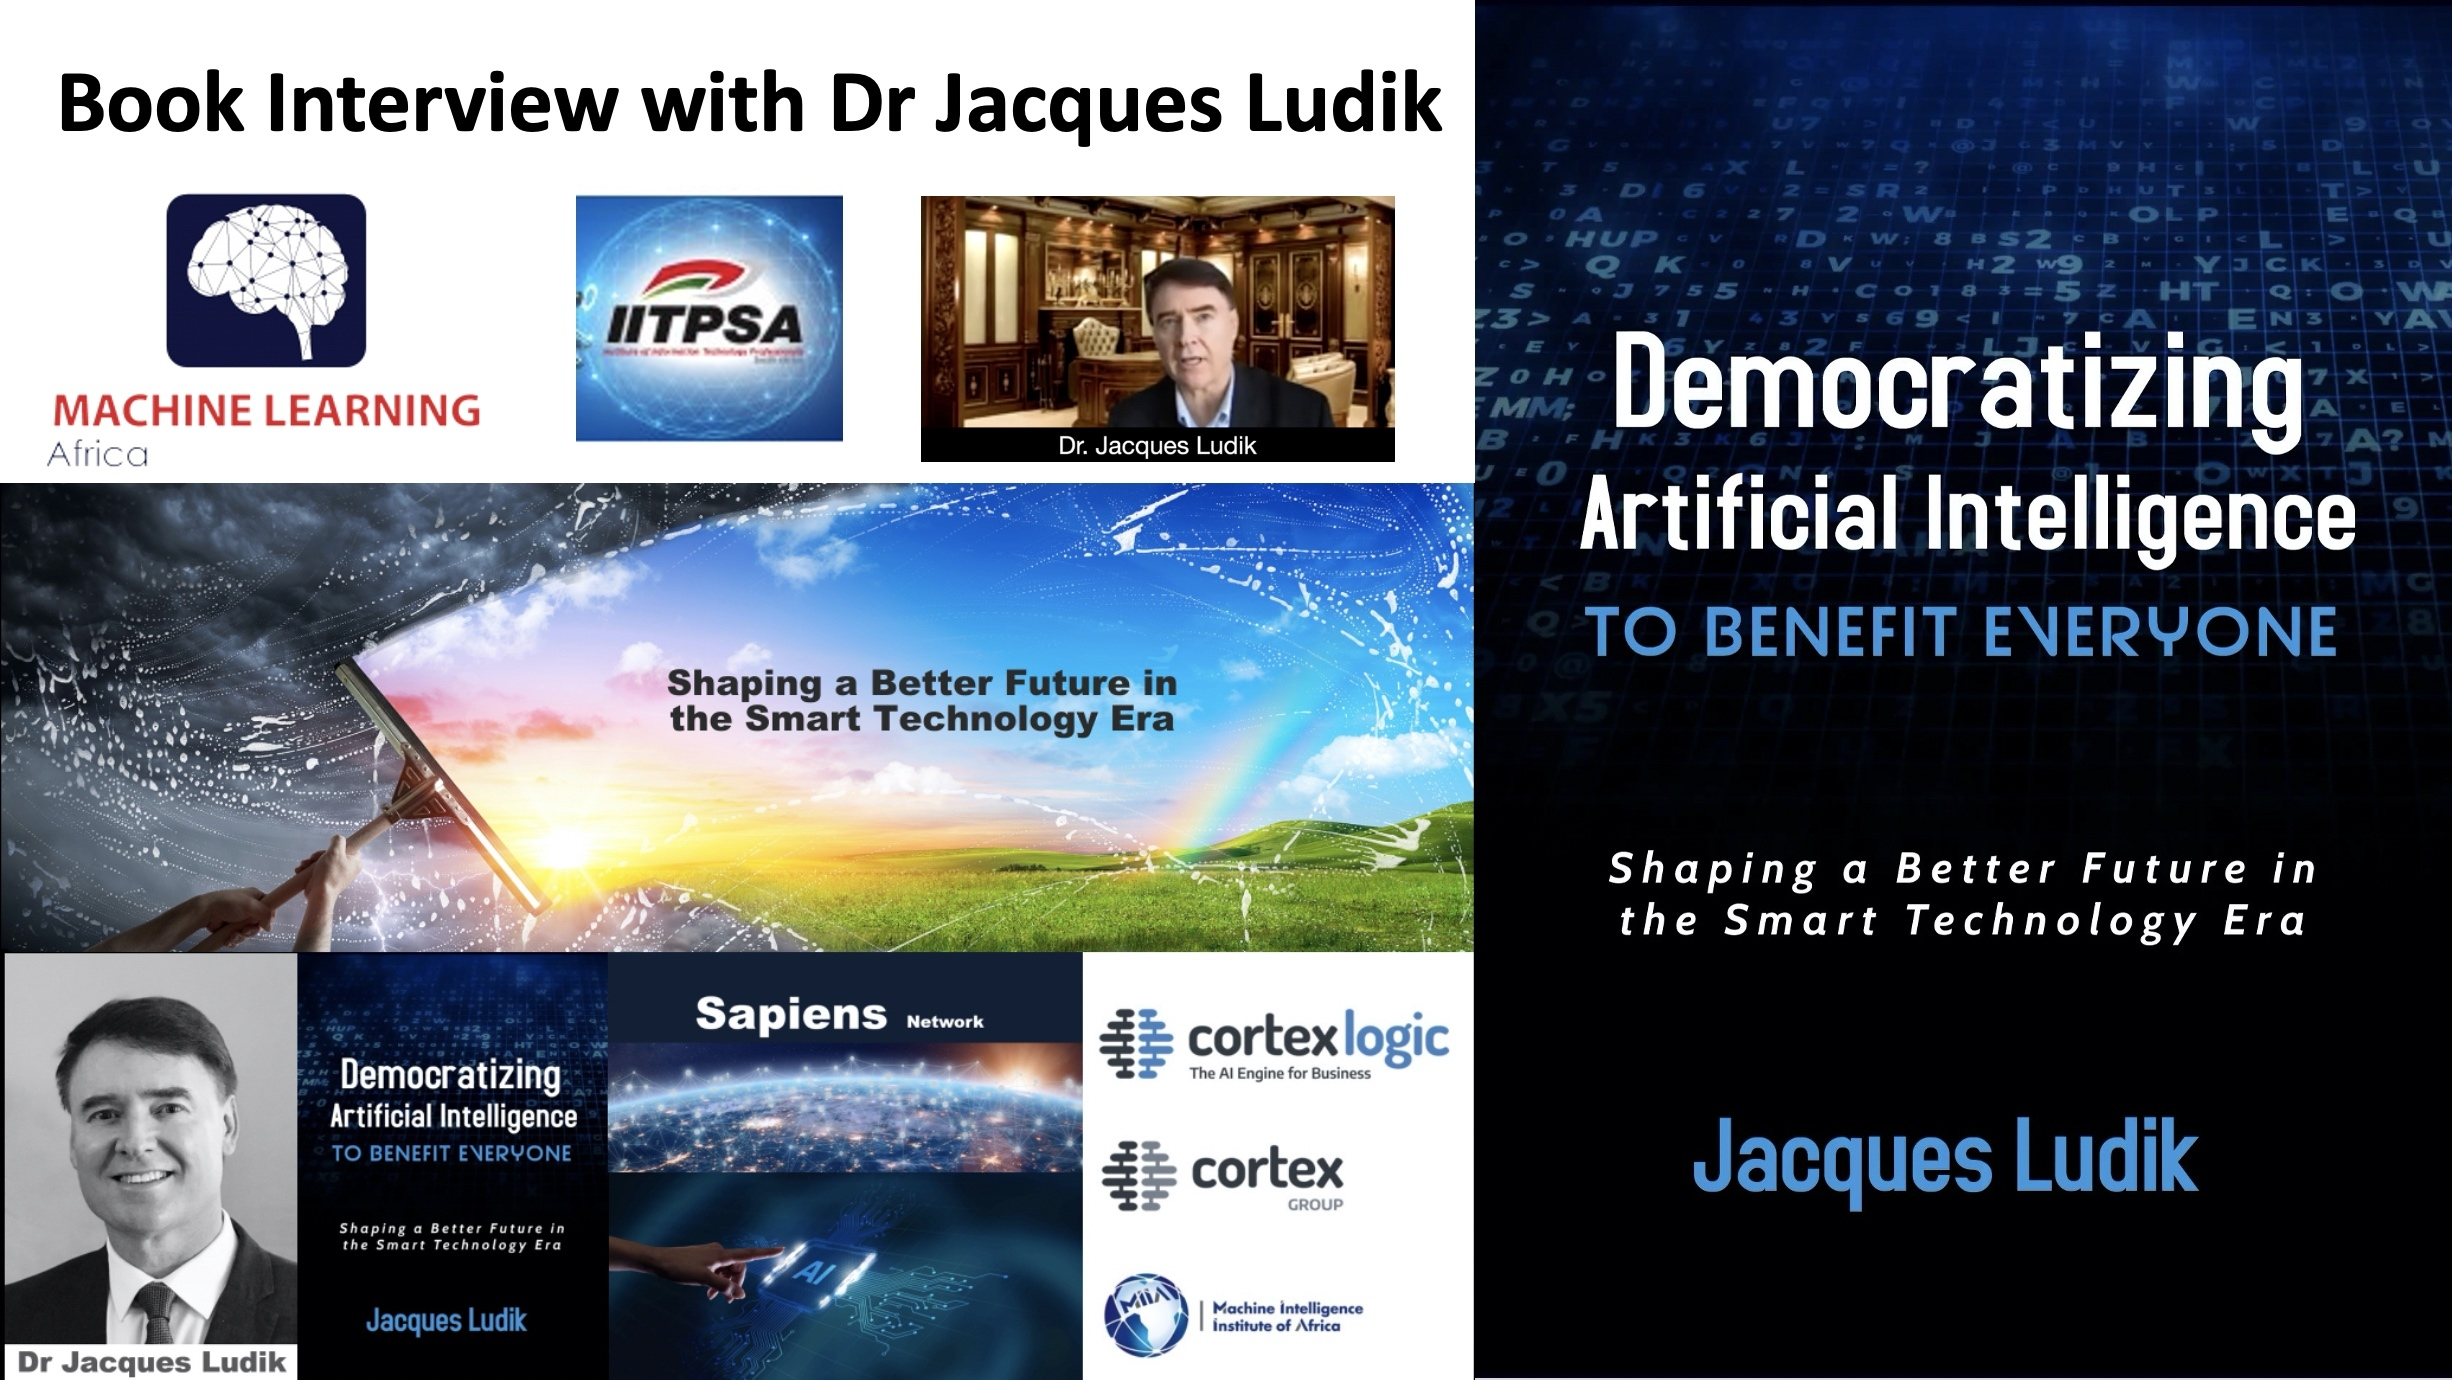 Democratizing AI to Benefit Everyone: Book Update, Reviews and Interview